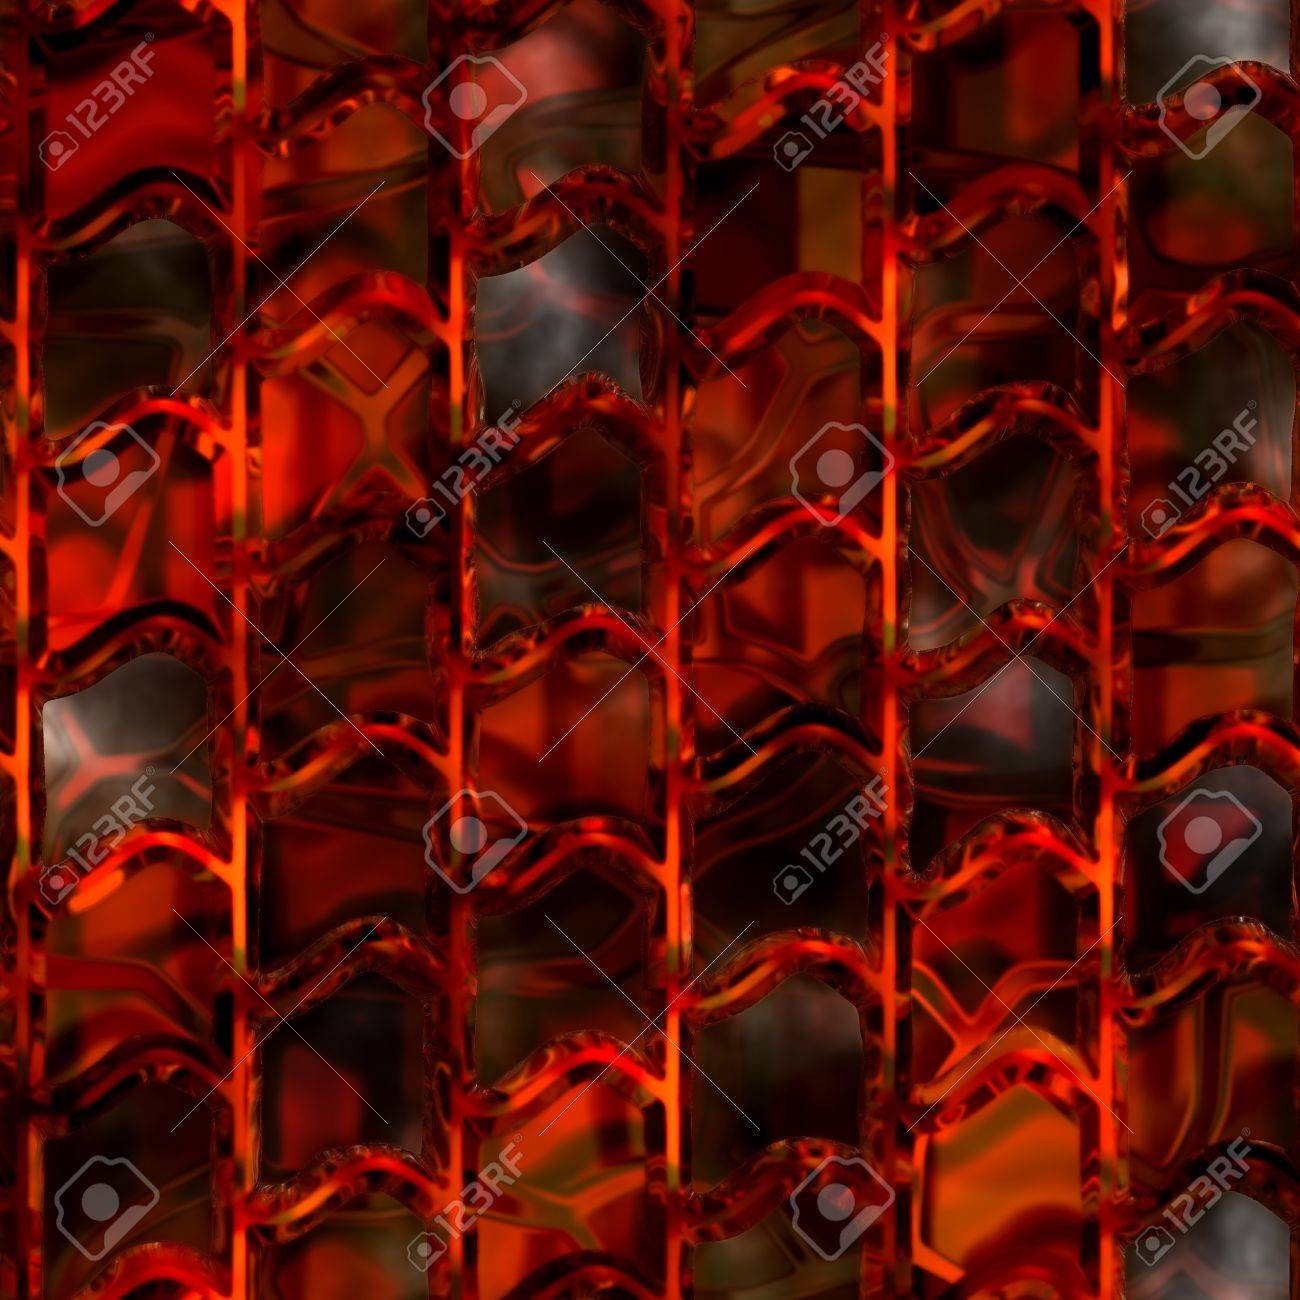 Stained Glass Seamless Texture Stock Photo Picture And Royalty